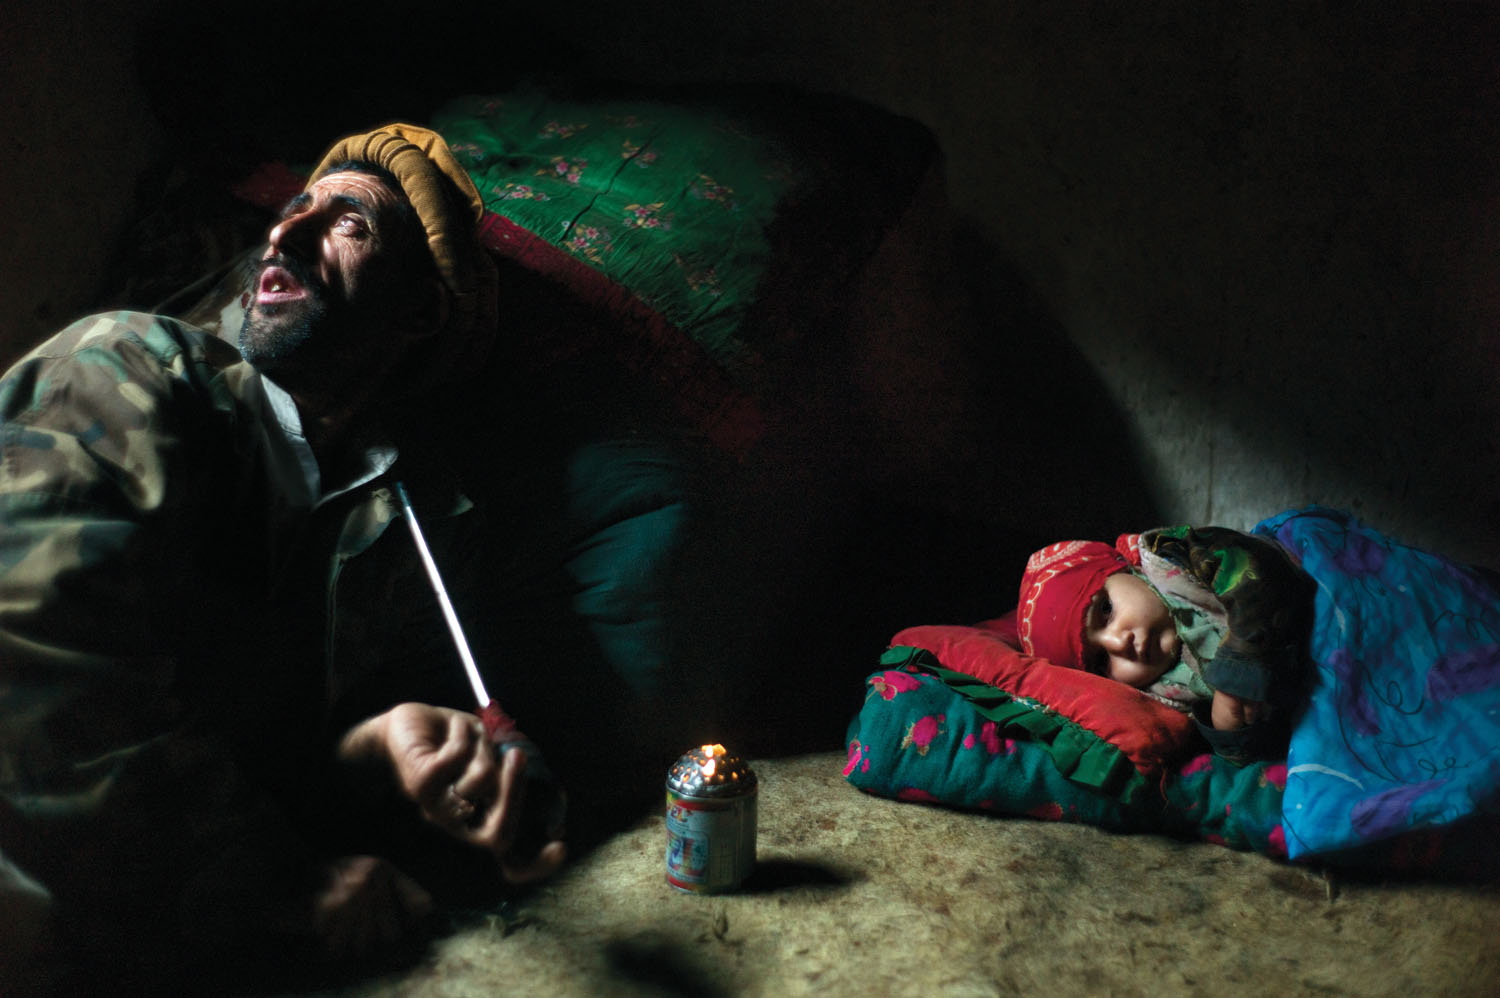 Shiite Muslims. Badakshan, Afghanistan. 2010. Photo by Monika Bulaj.